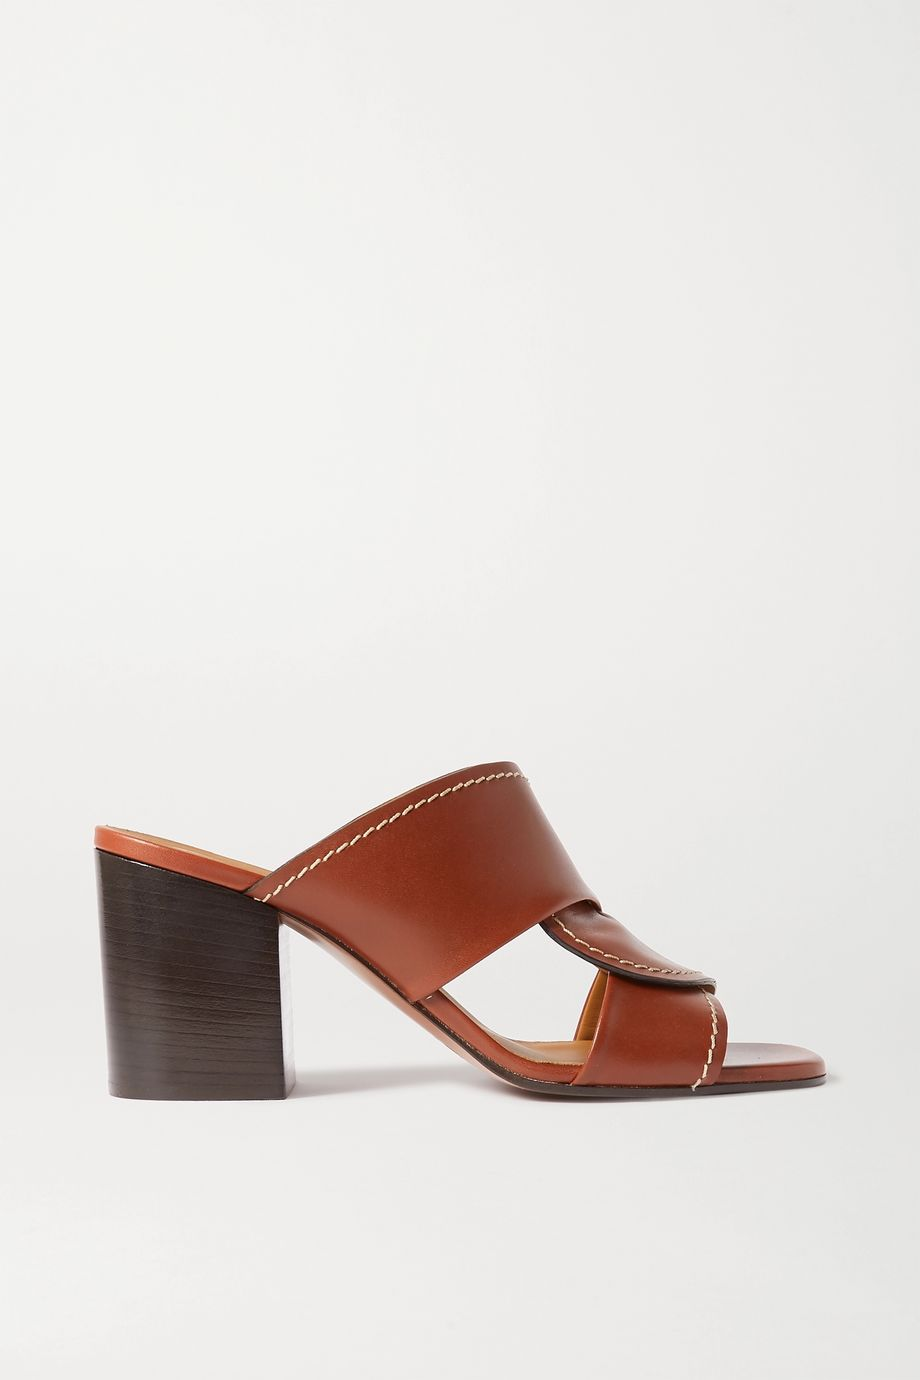 Chloé Candice topstitched leather mules